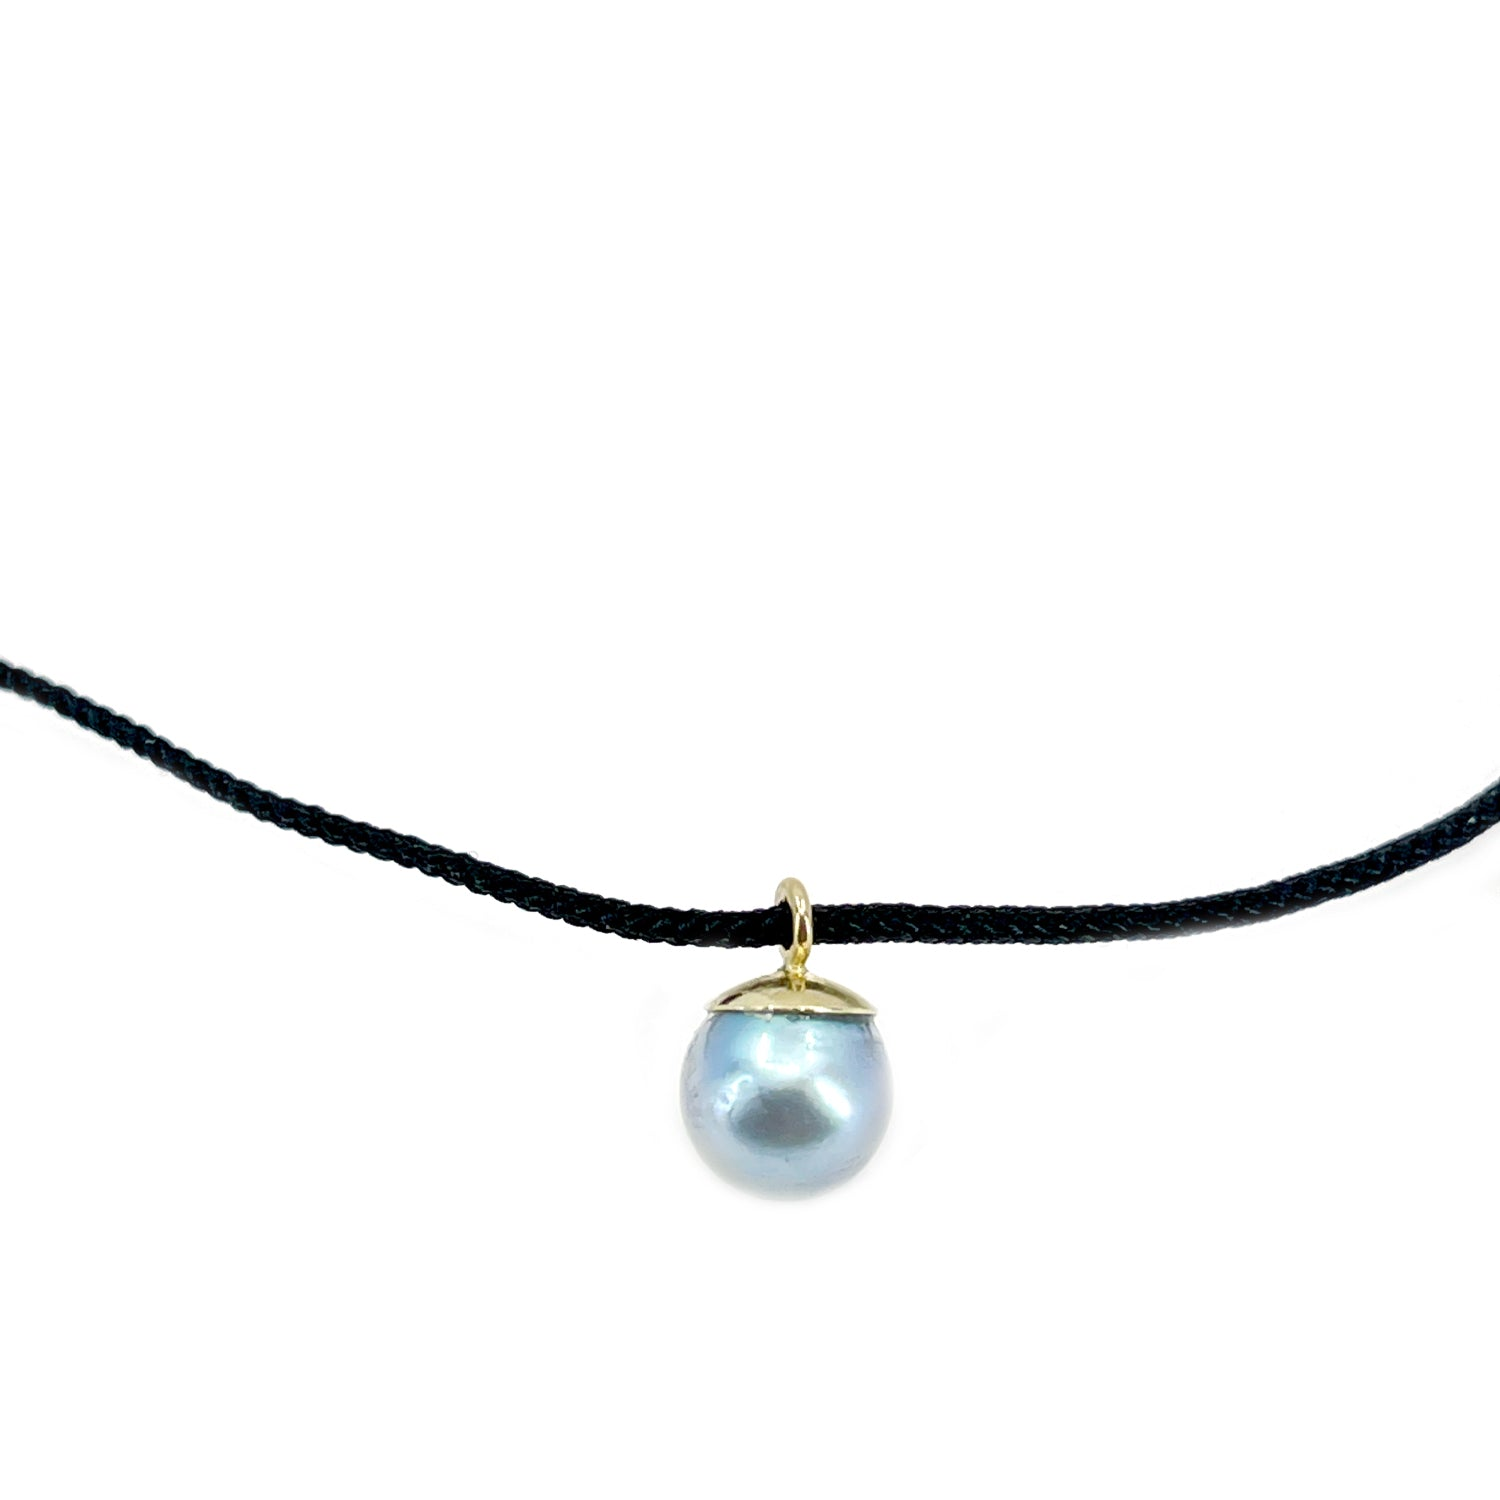 Kumihimo Braided Pure Black Silk Vintage Blue Akoya Saltwater Cultured Pearl Adjustable Necklace-14K Yellow Gold